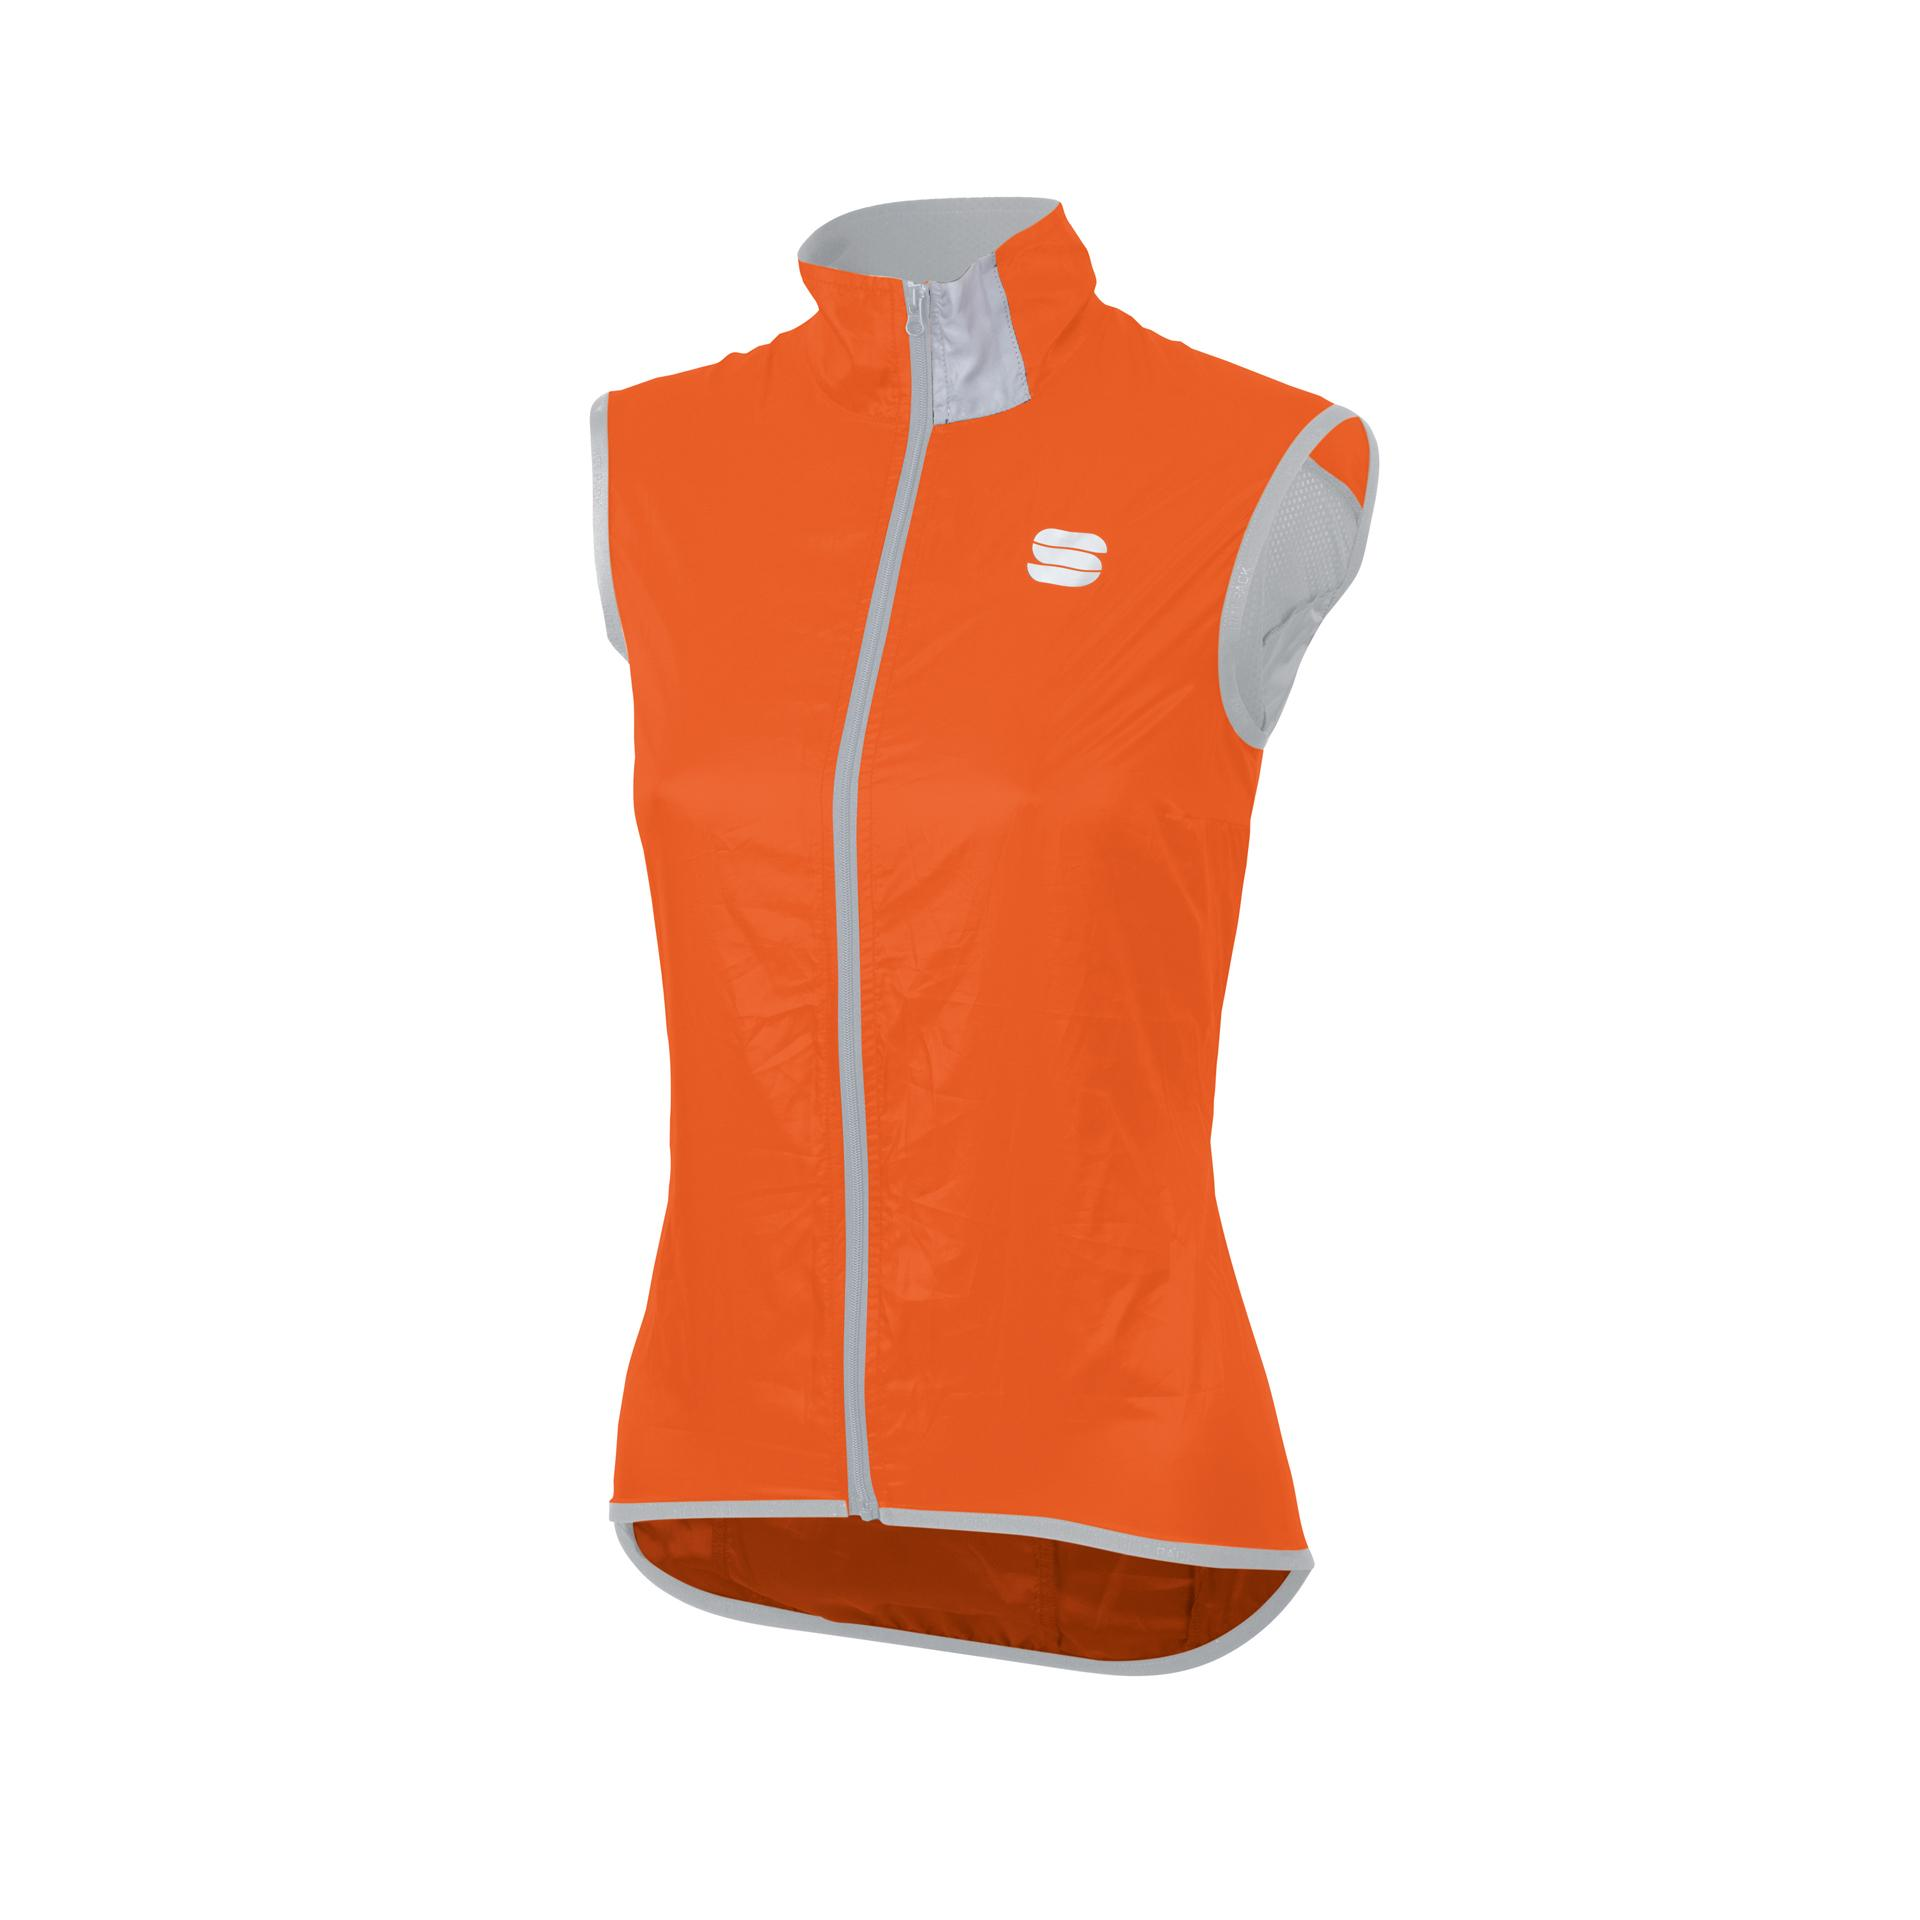 Sportful Windstopper mouwloos Dames Oranje  / SF Hot Pack Easylight W Vest-Orange Sdr